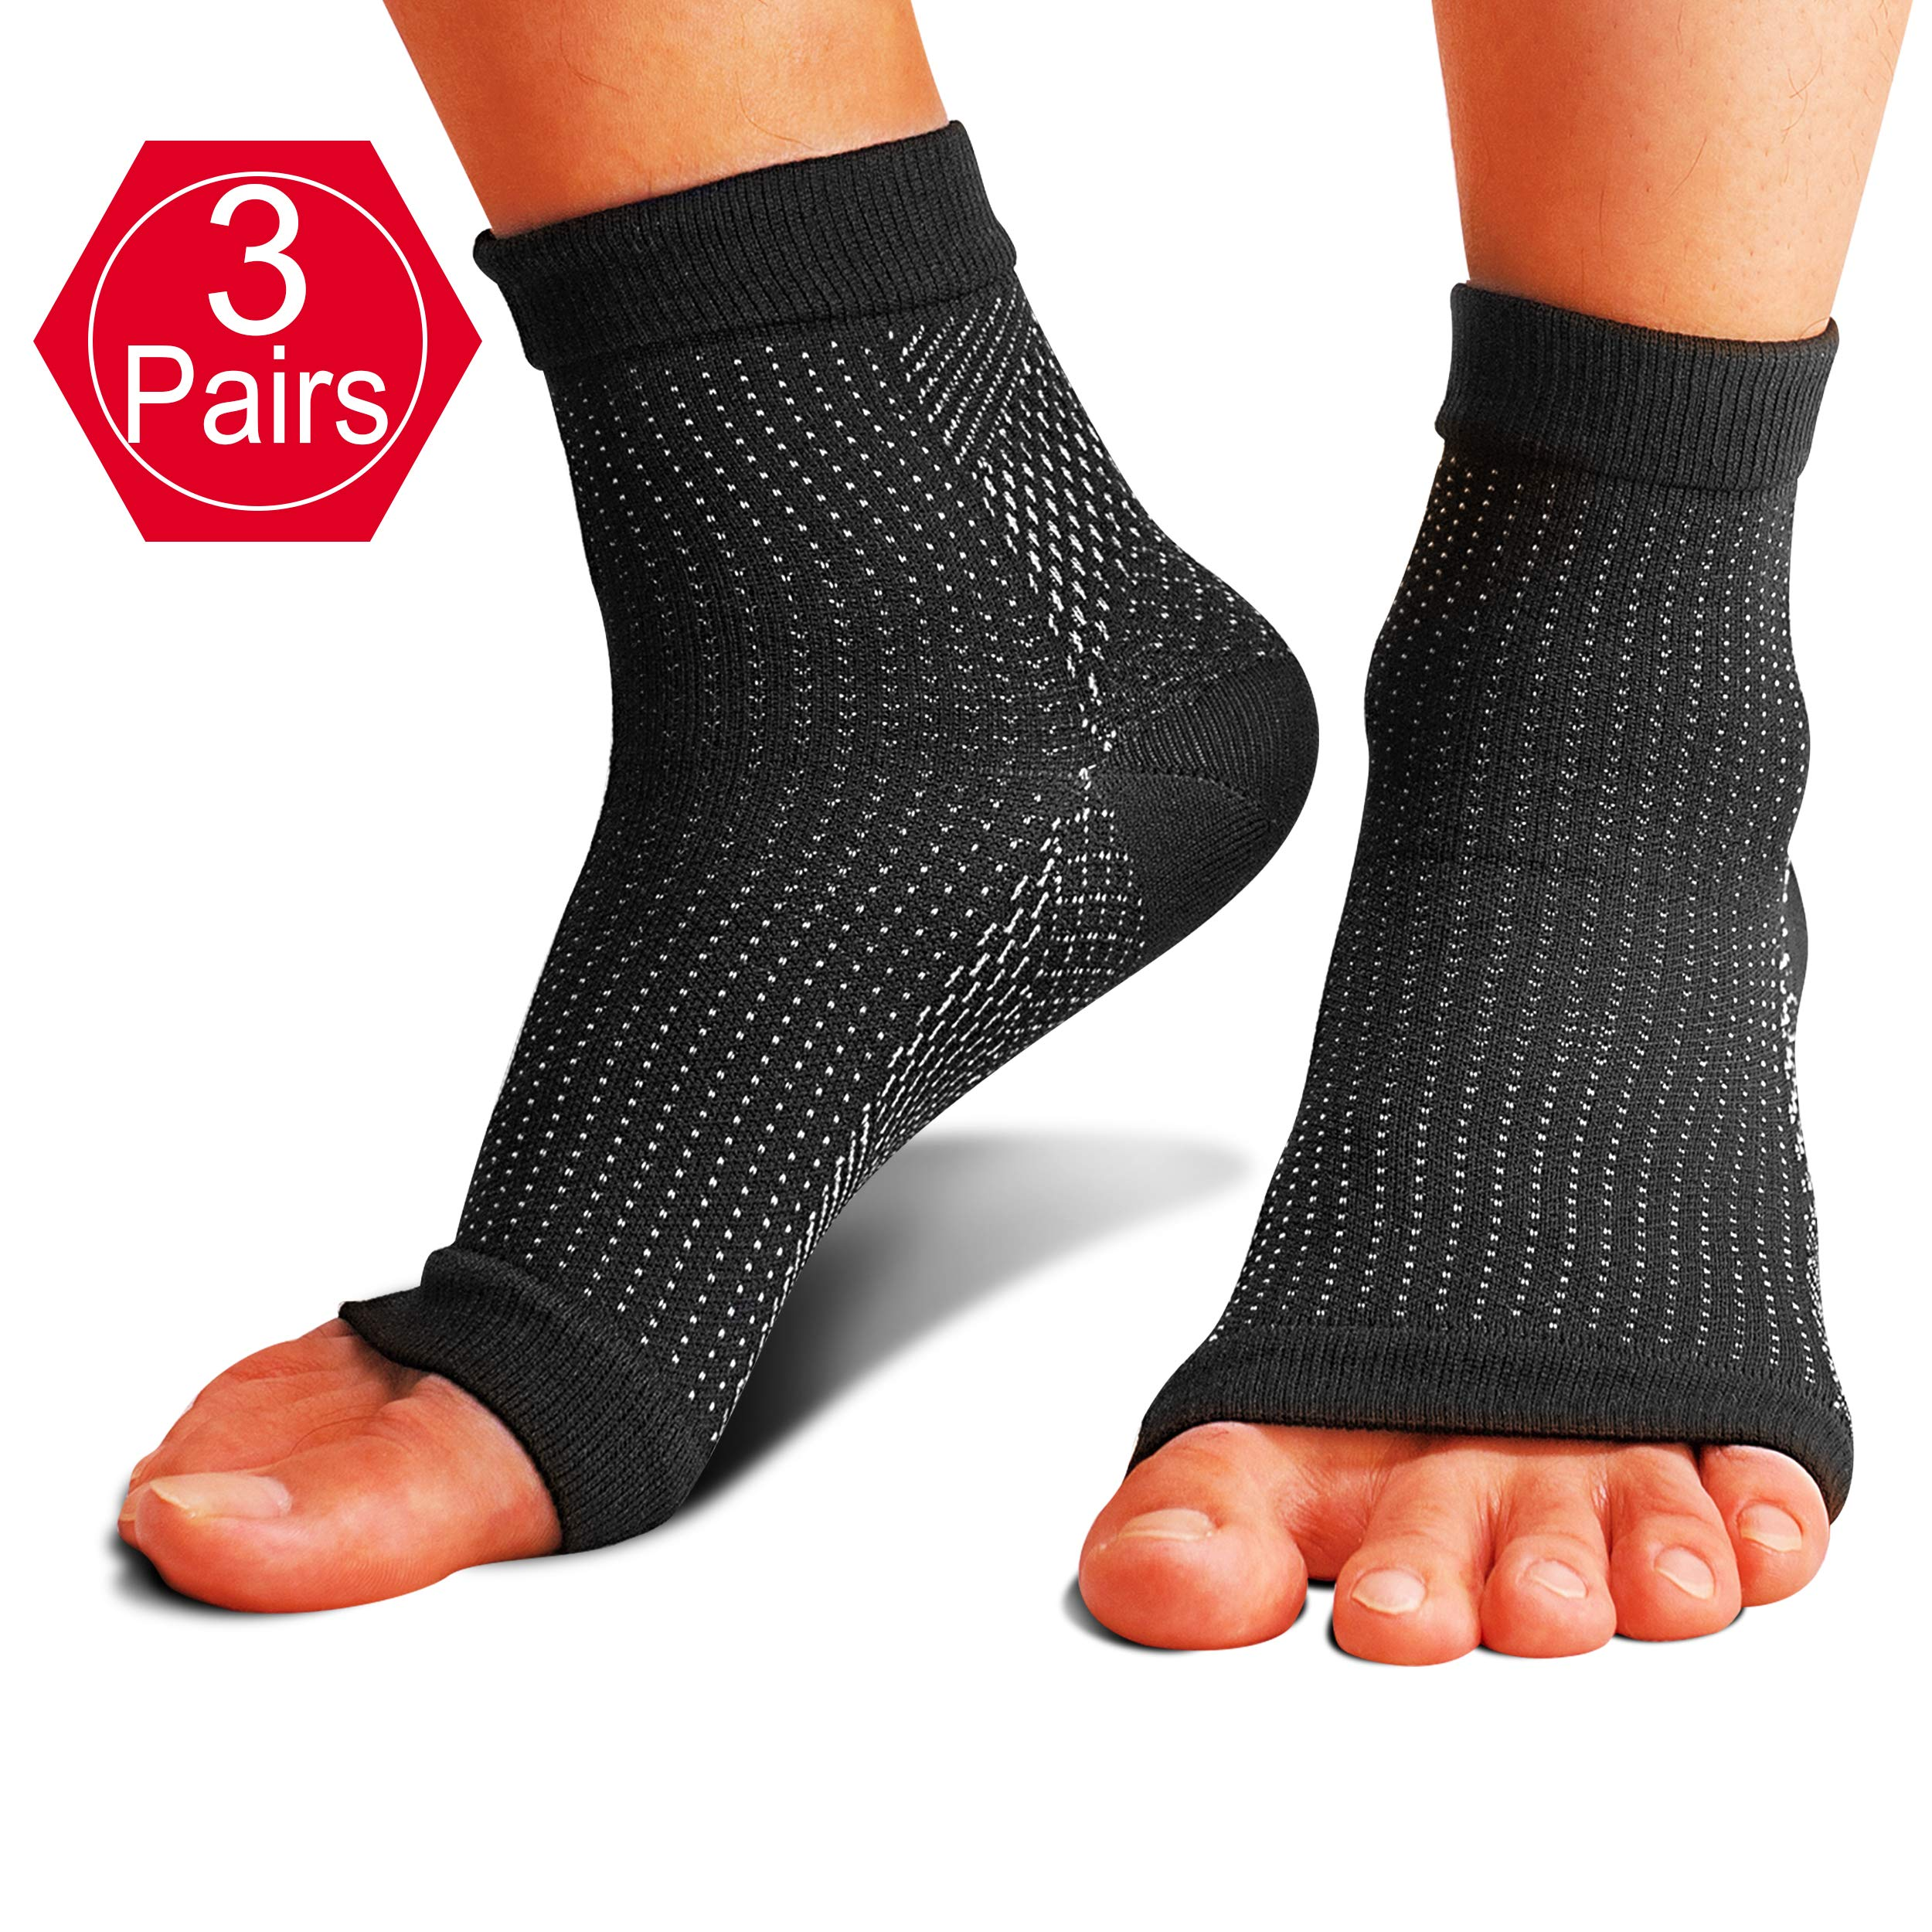 Foot Compression Socks, 3 Pairs Plantar Fasciitis Socks with Arch Support for Men Women - Best Compression Foot Sleeve for Aching Feet & Heel Pain Relief - Better Than Night Splint, Size S/M.